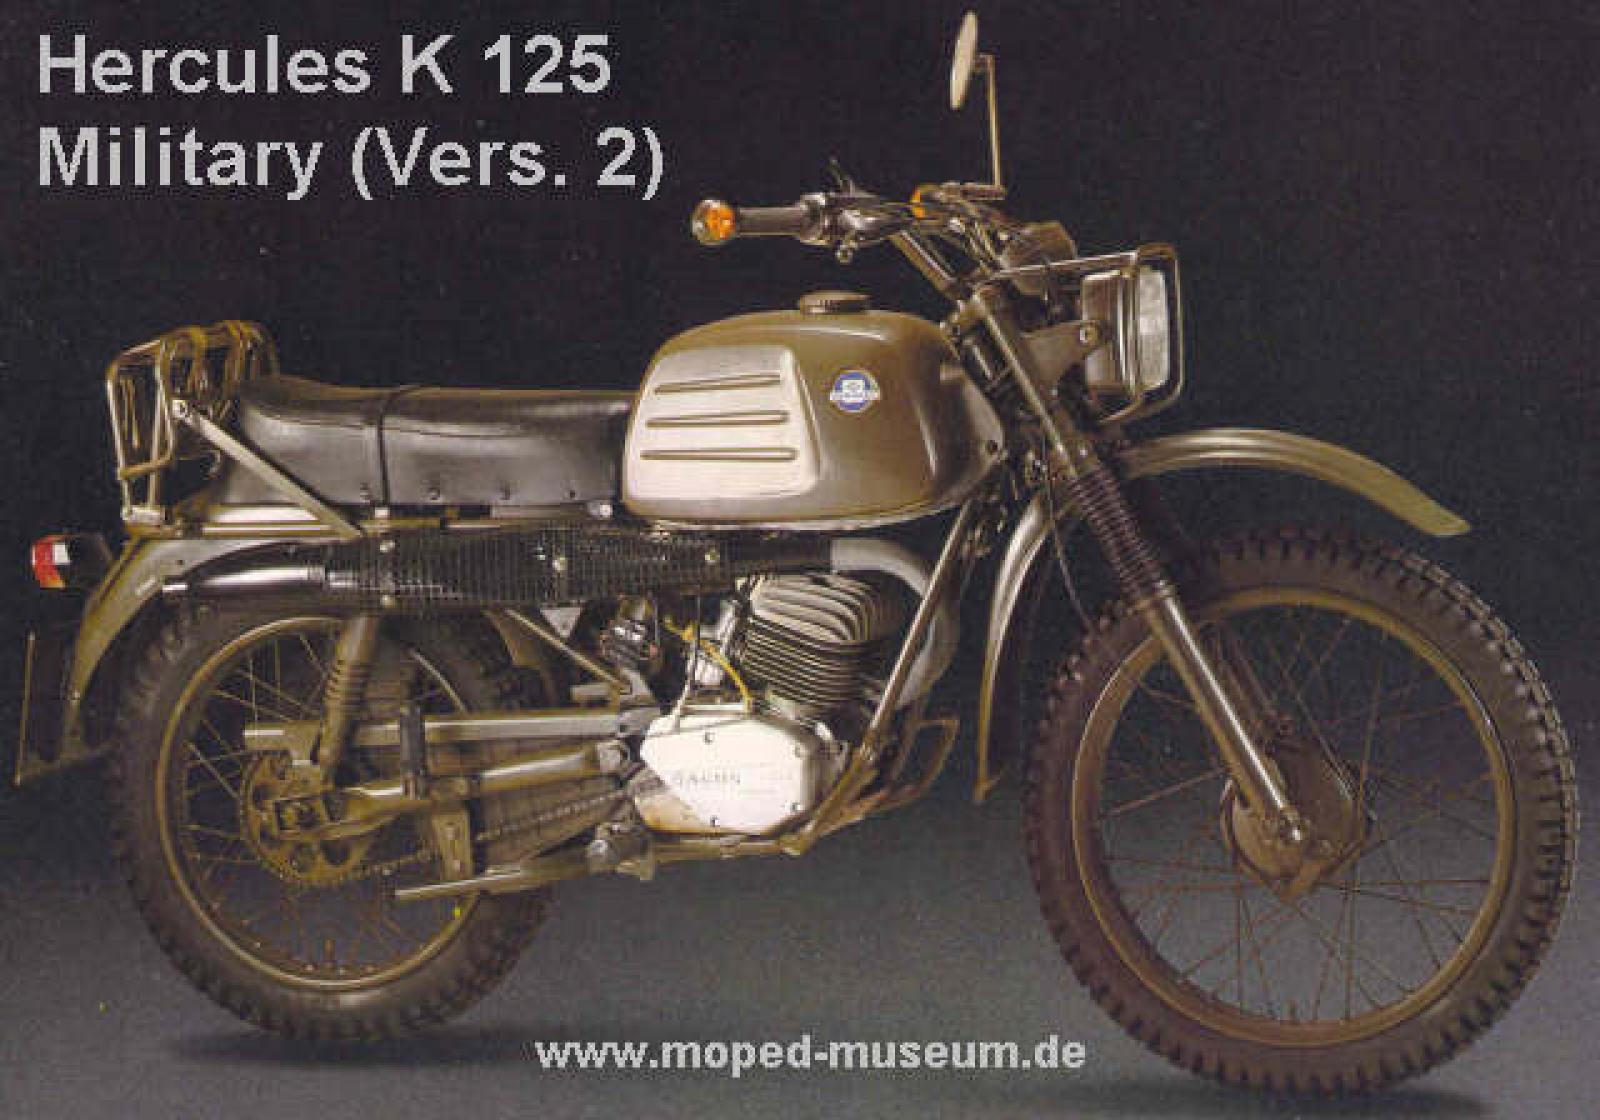 Hercules K 125 Military 1980 images #74135